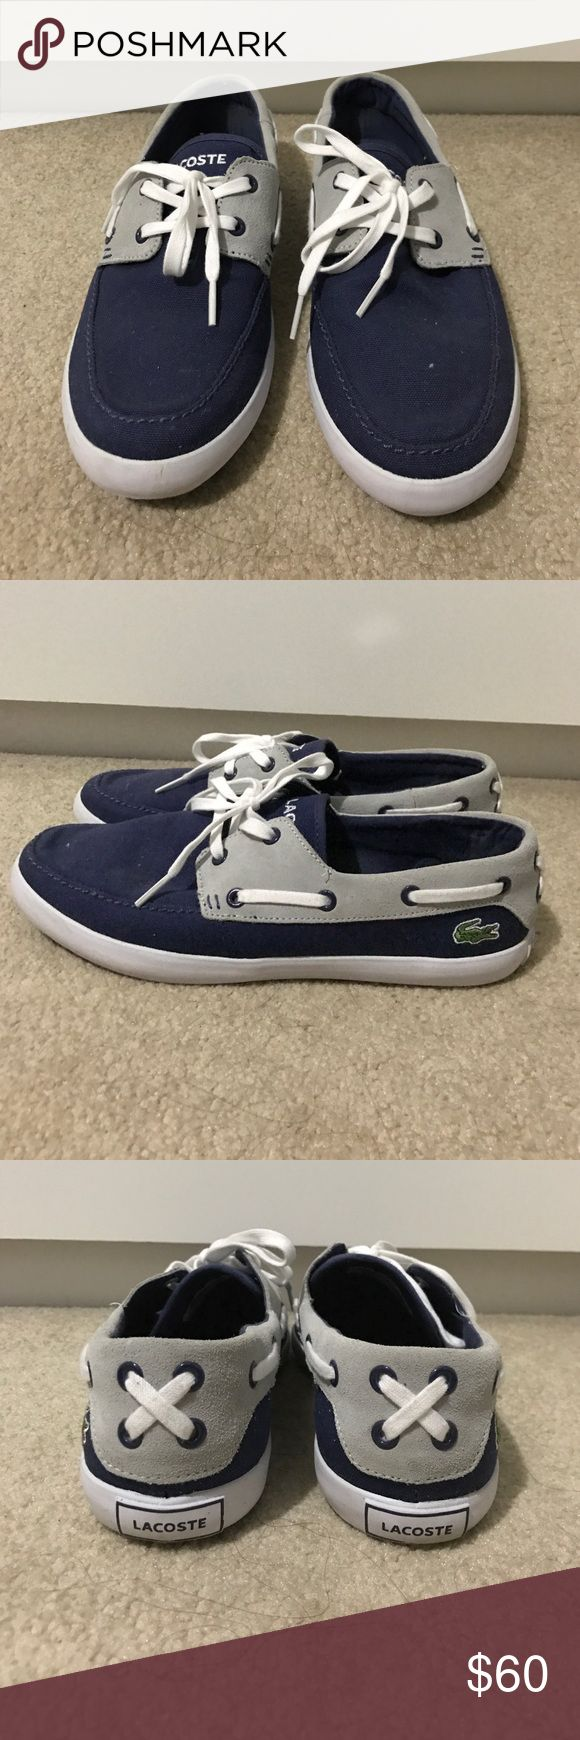 Lacoste Boat Shoes Women's Blue Lacoste boat shoes size 10. Worn once Lacoste Shoes Flats & Loafers